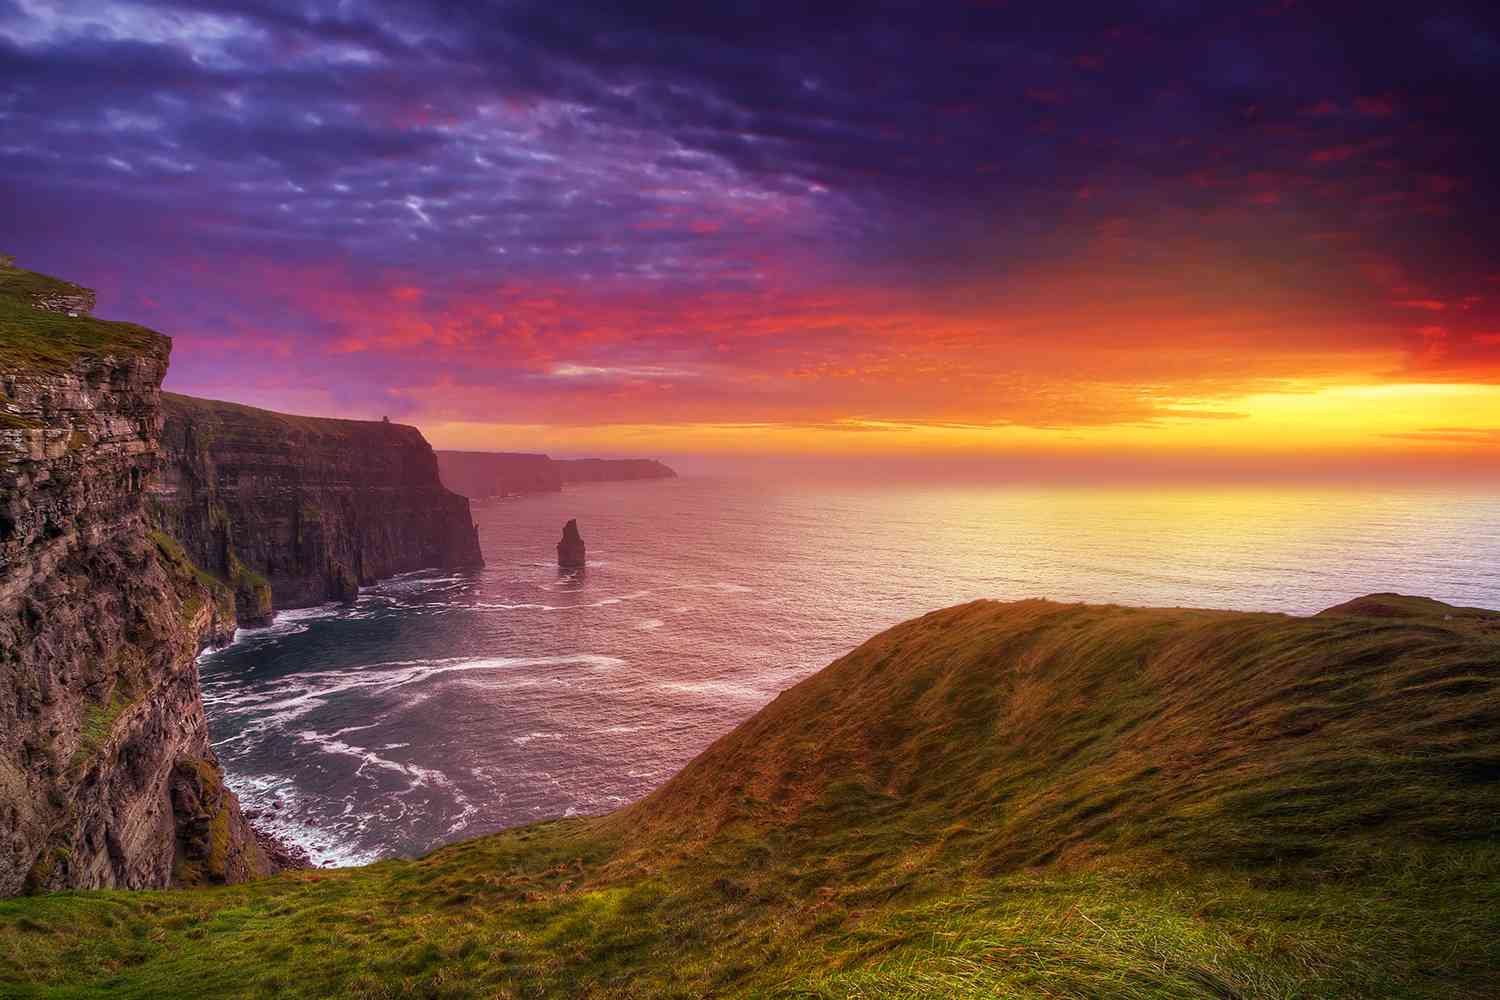 amazing sunet over cliffs